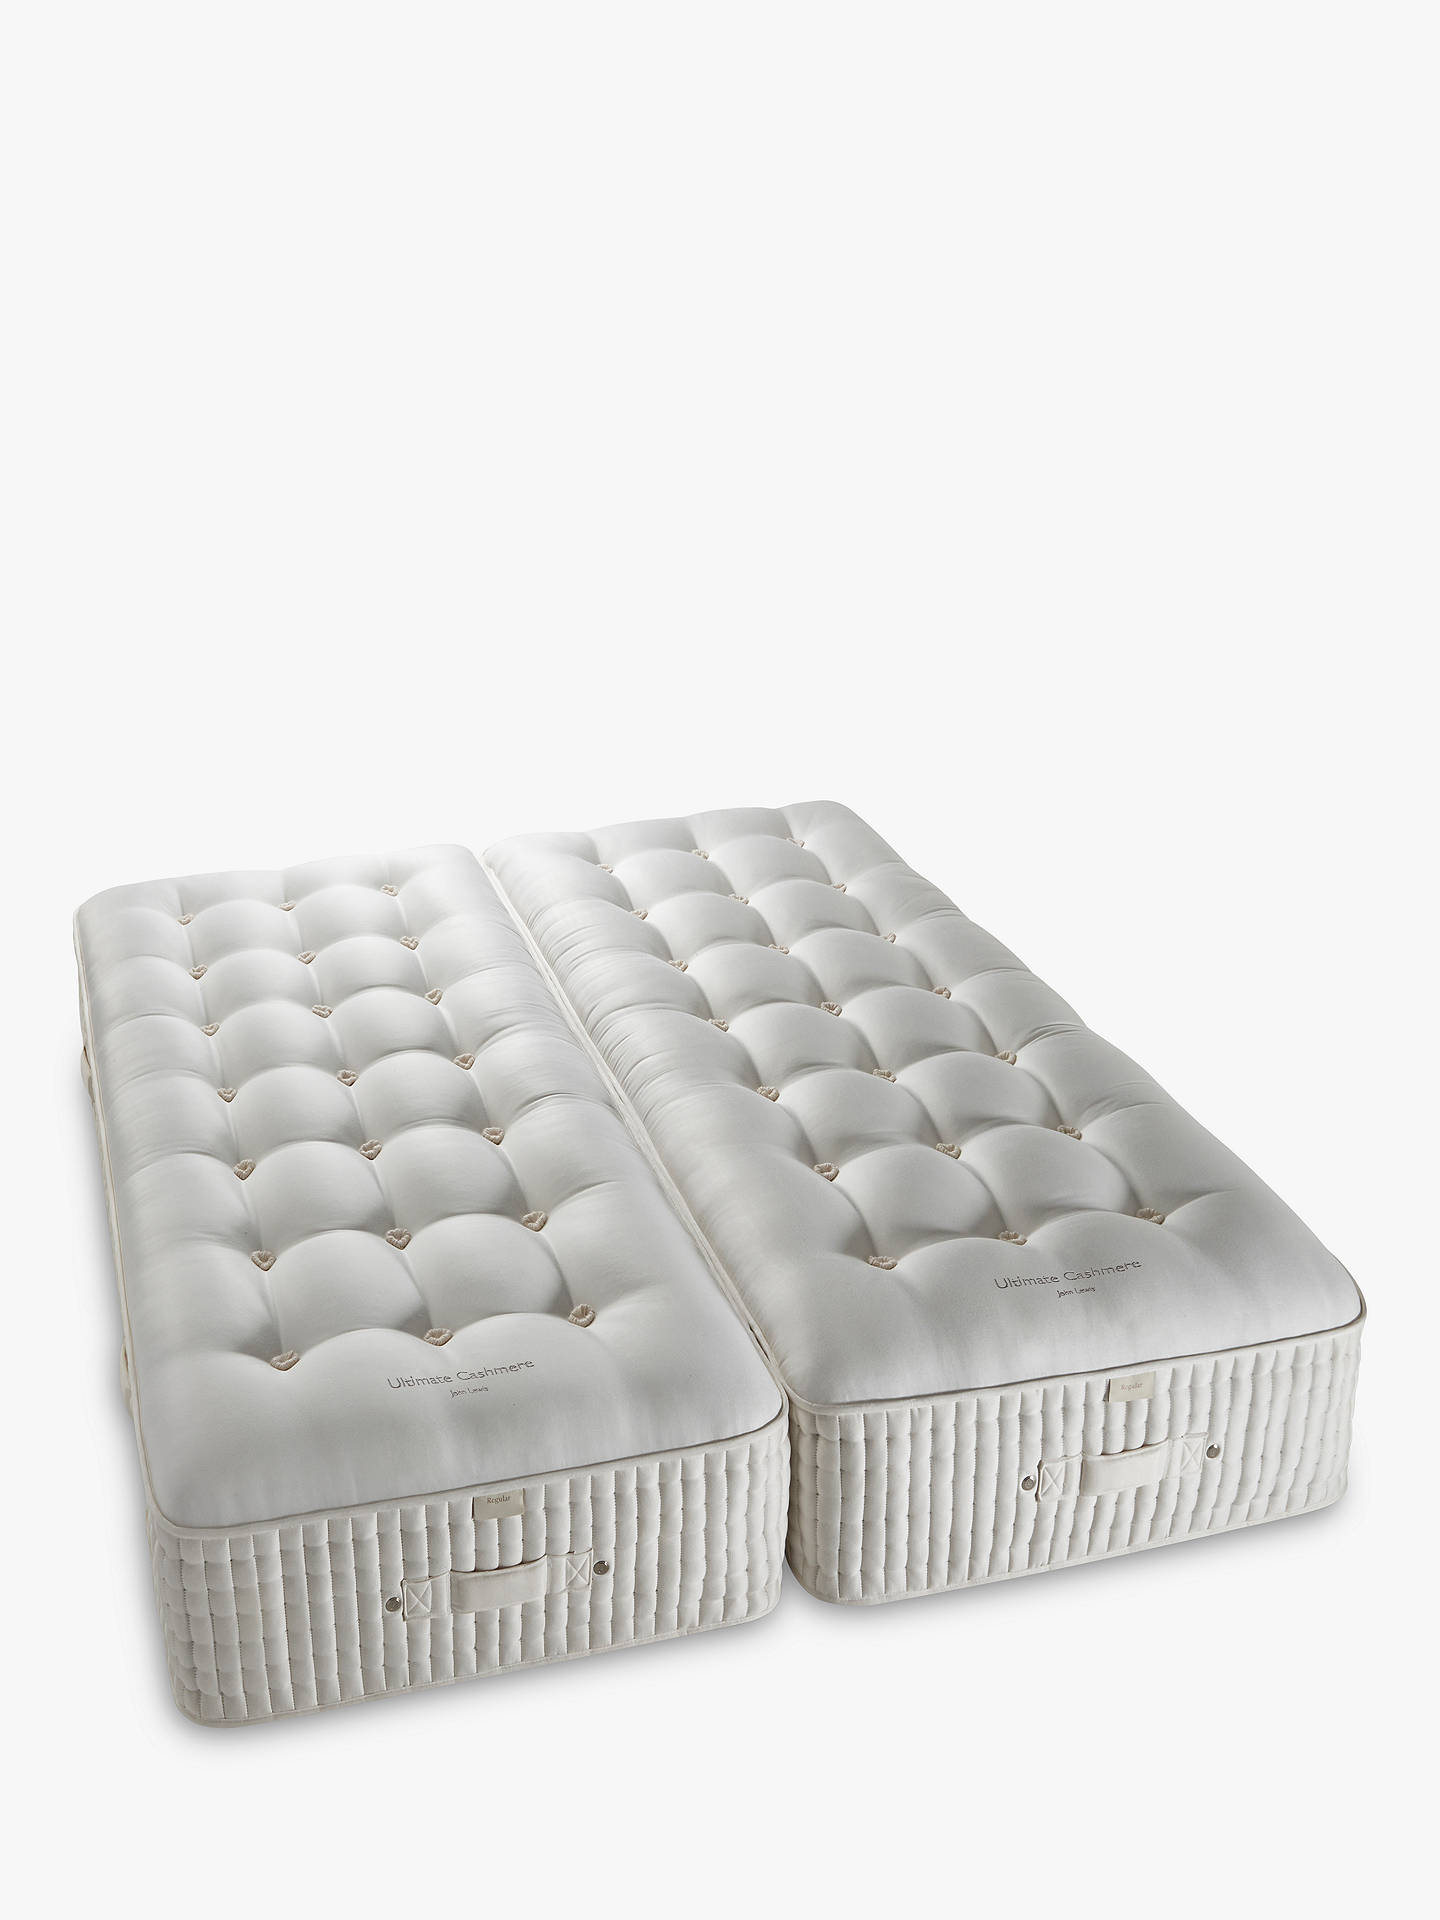 Buy John Lewis & Partners The Ultimate Collection Cashmere Pocket Spring Zip Link Mattress, Medium, King Size Online at johnlewis.com